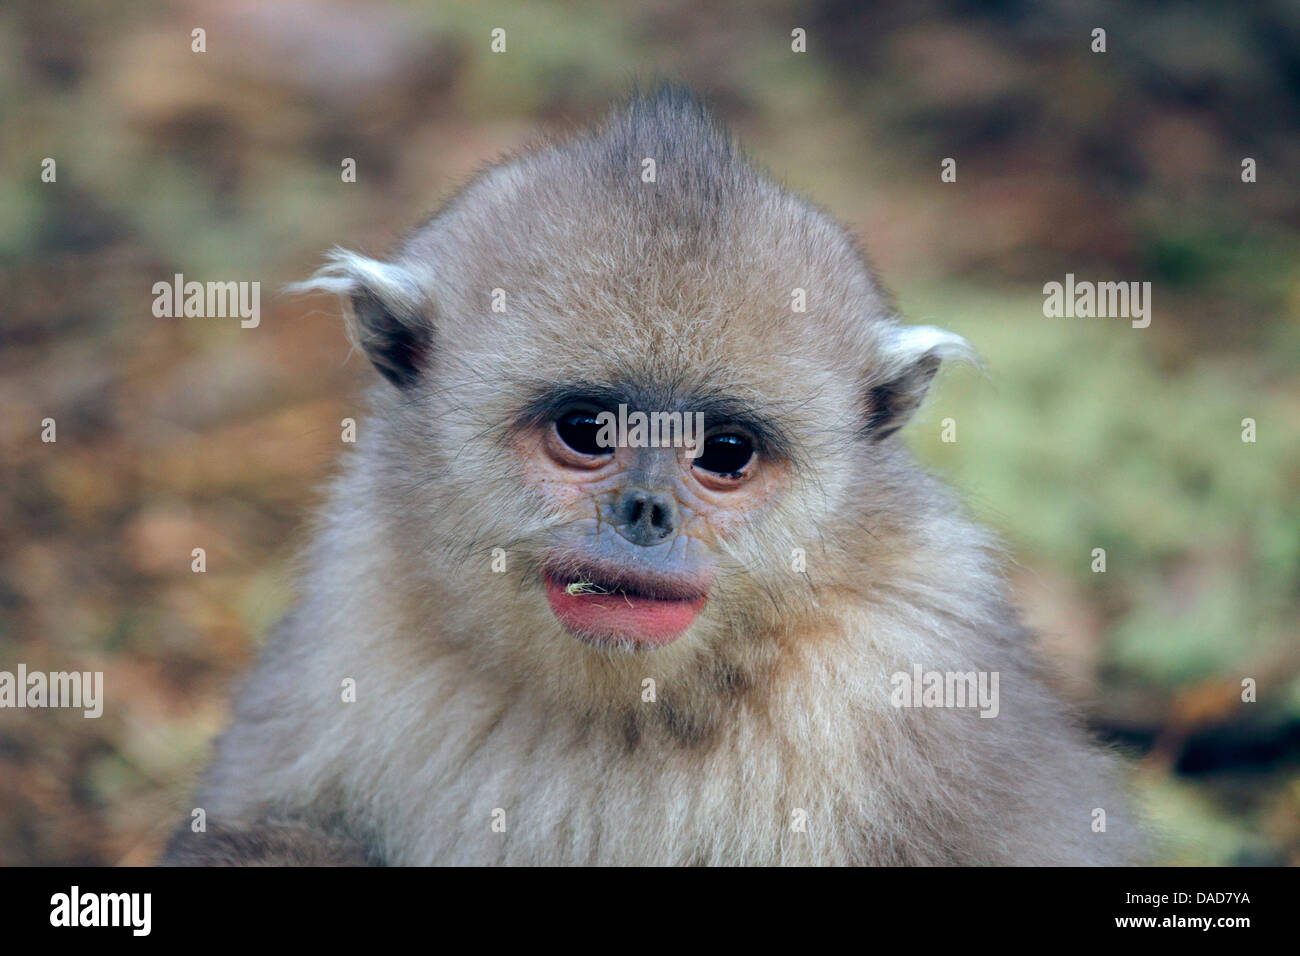 Black snub-nosed monkey, Yunnan snub-nosed monkey (Rhinopithecus bieti), Juvenile eating lichen, China, Yunnan, Stock Photo